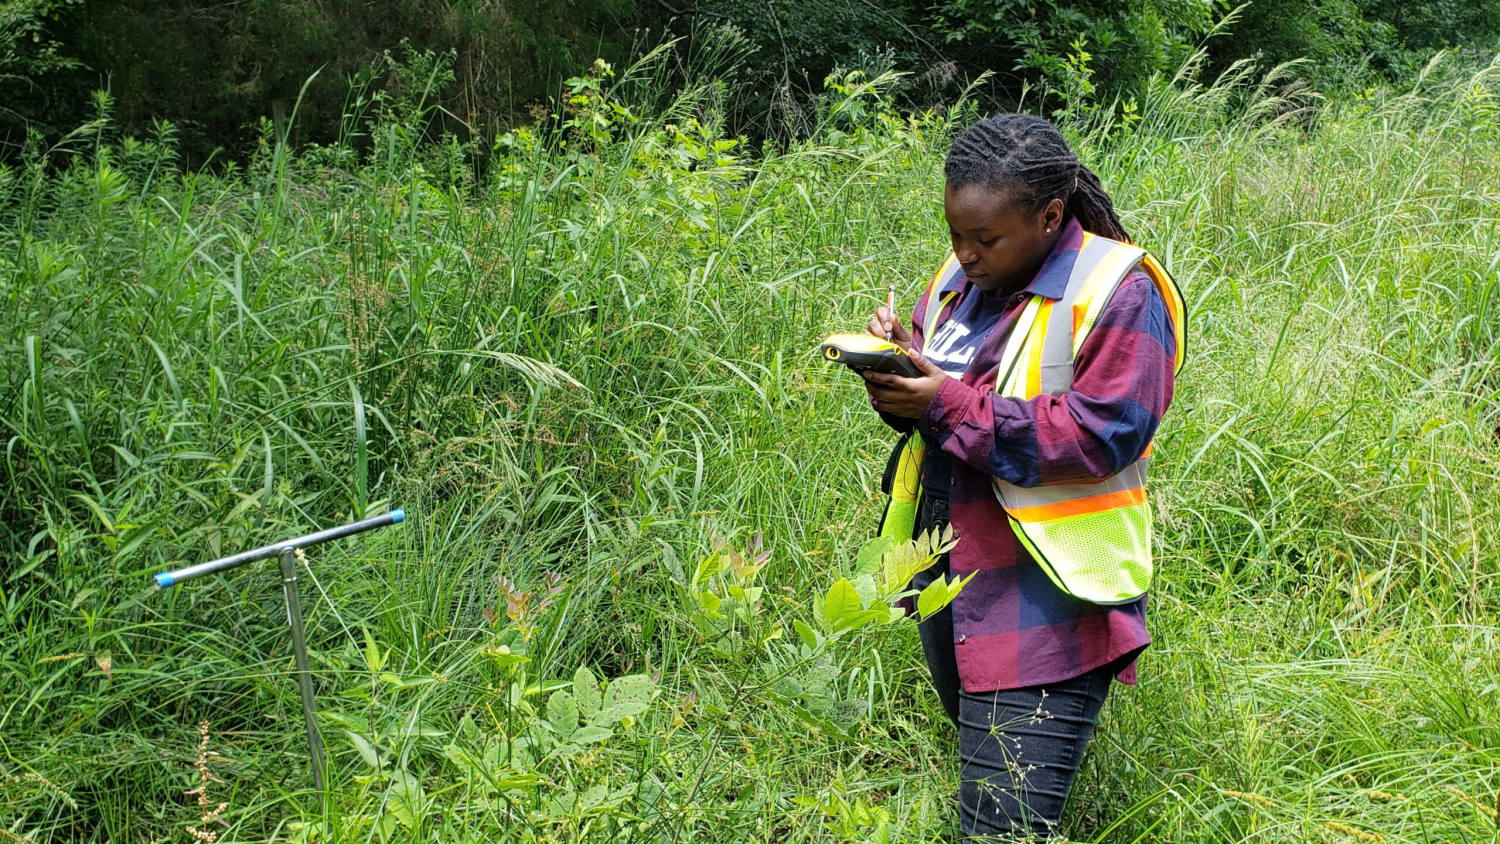 Neverson works in the field outside - Graduation to Vocation: Enhancing the Environment - Forestry and Environmental Resources NC State University